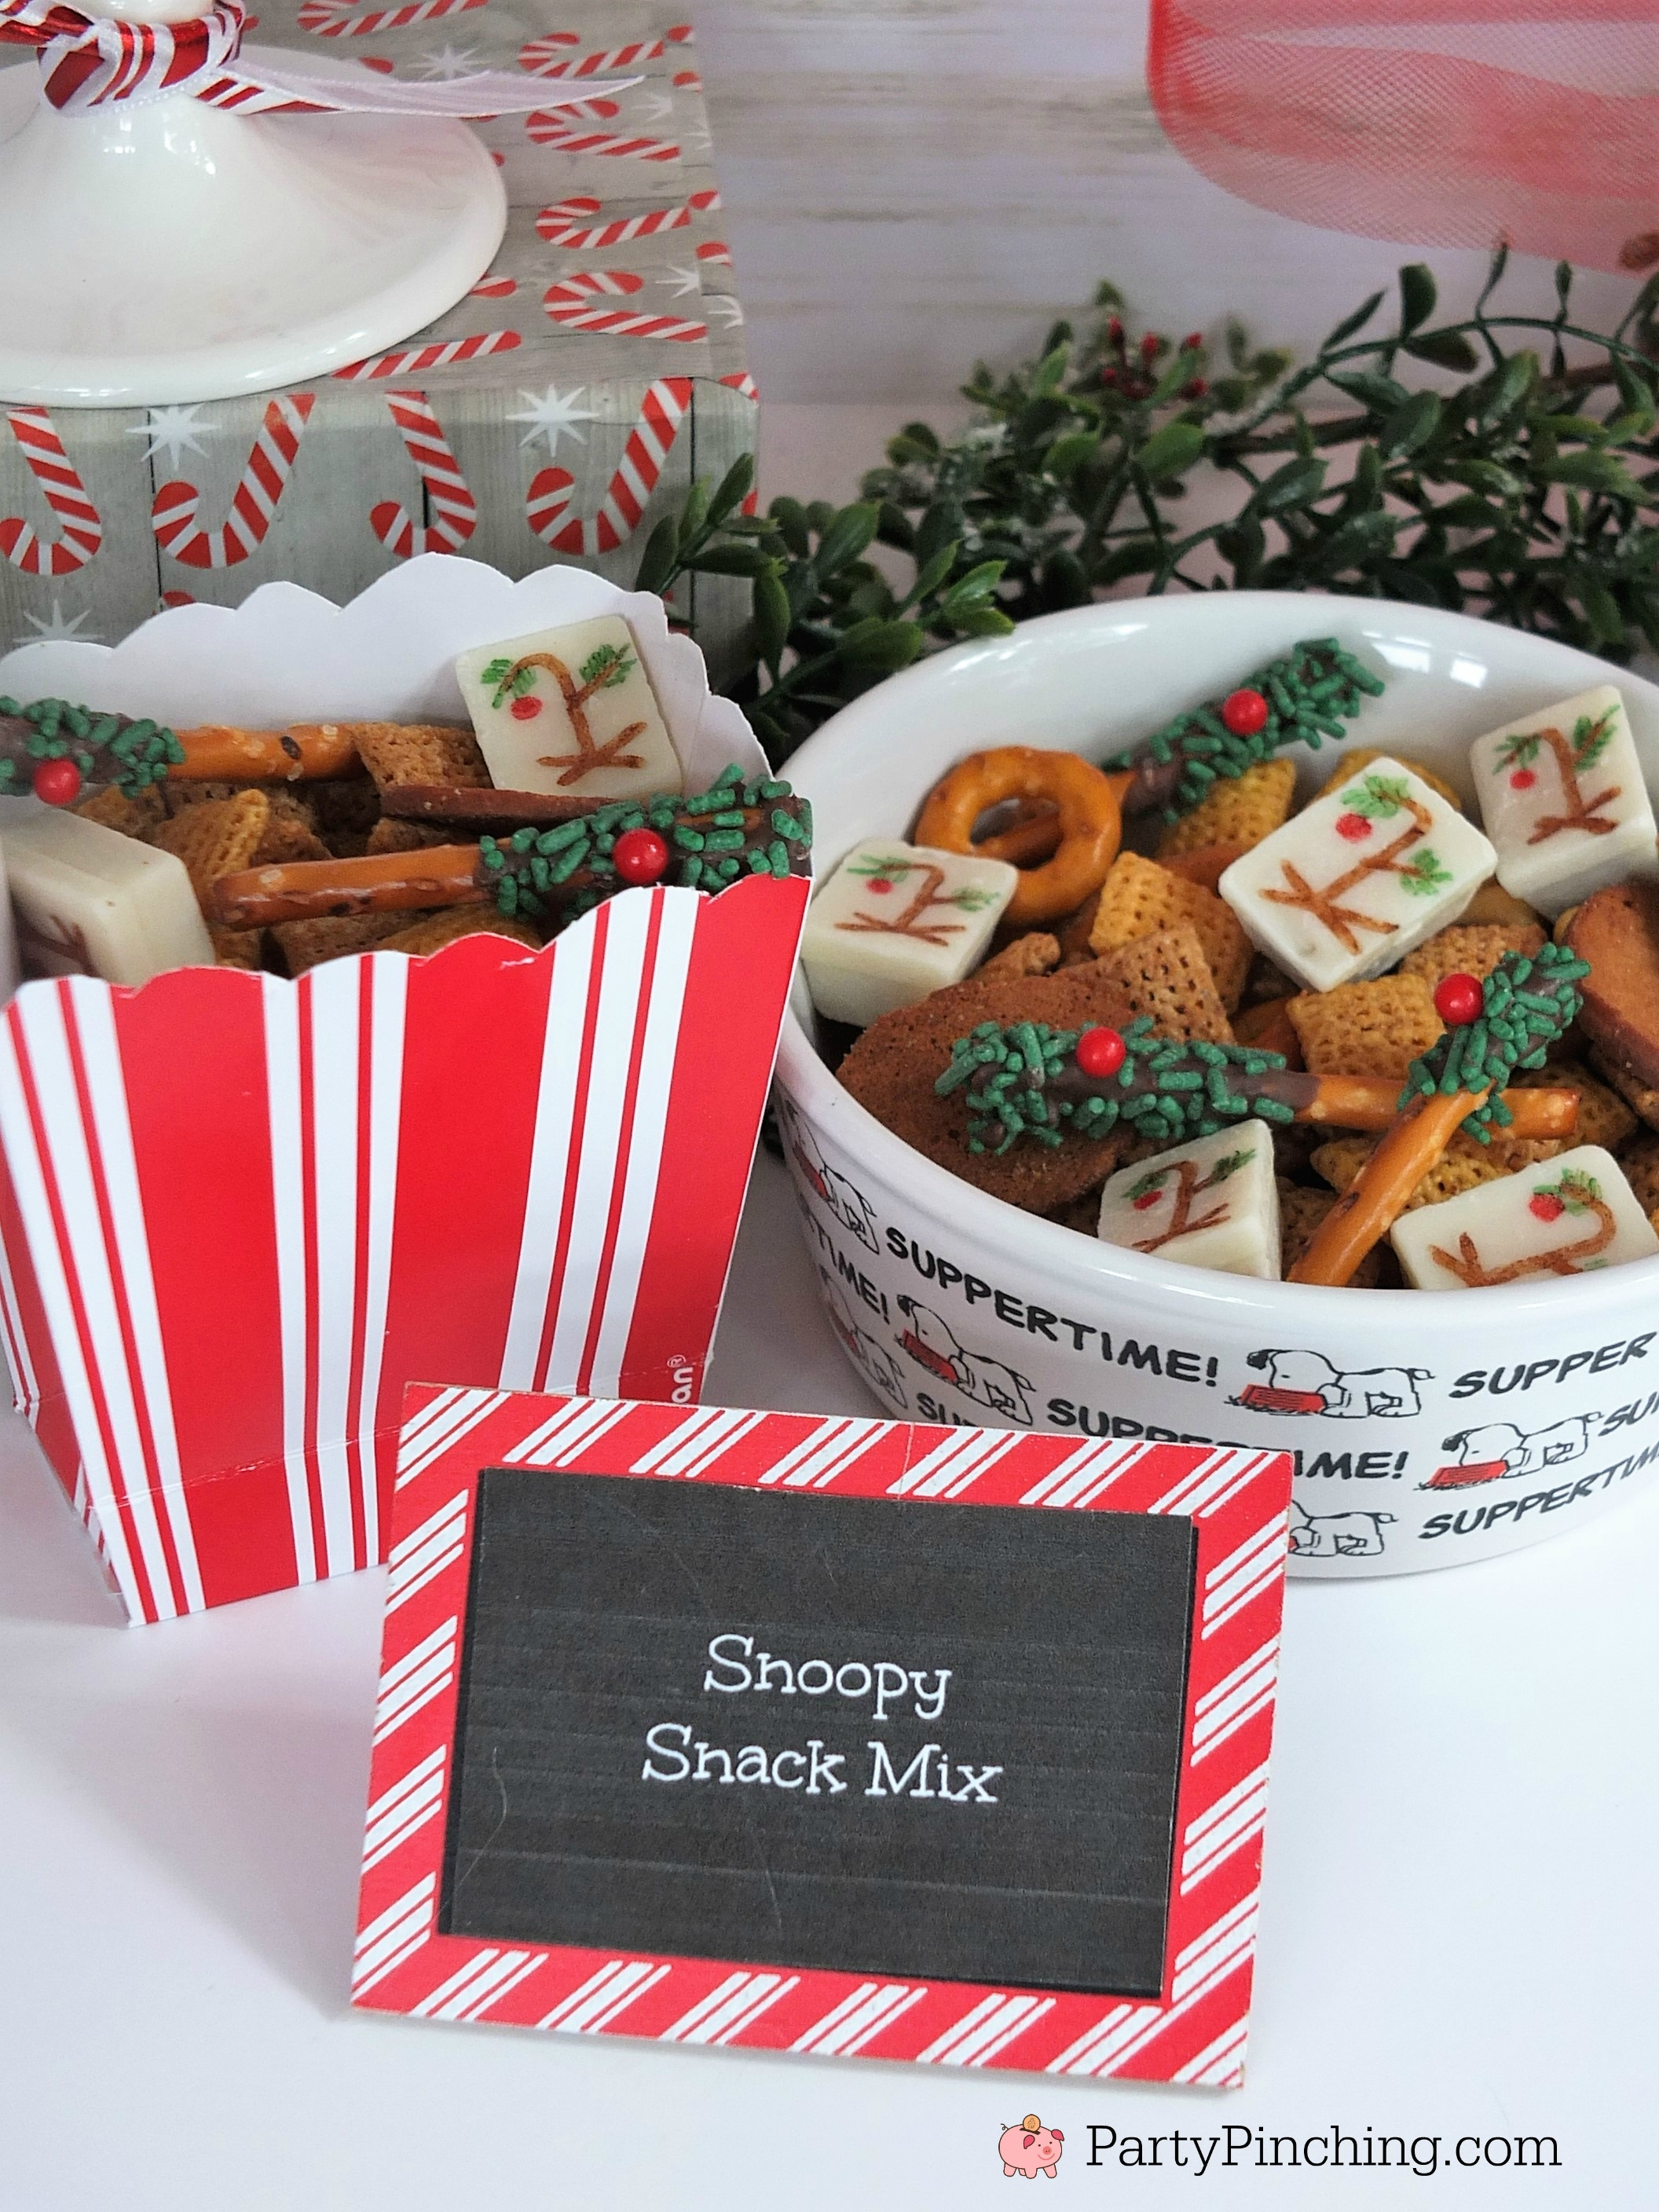 Snoopy Snack Mix Charlie Brown Christmas movie Chex Mix treat Kit Kats